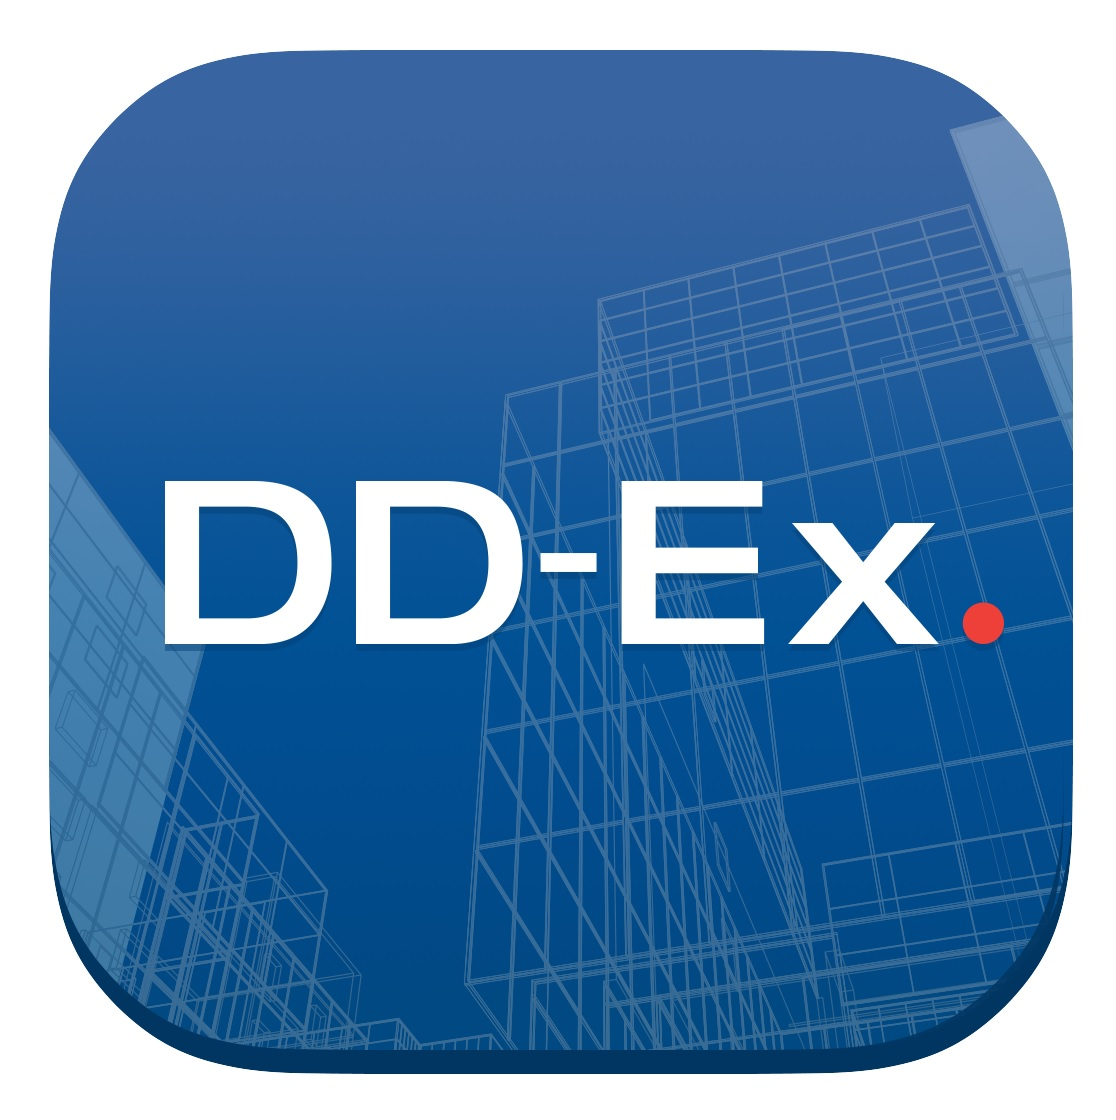 DD-Ex. Application for defects monitoring.